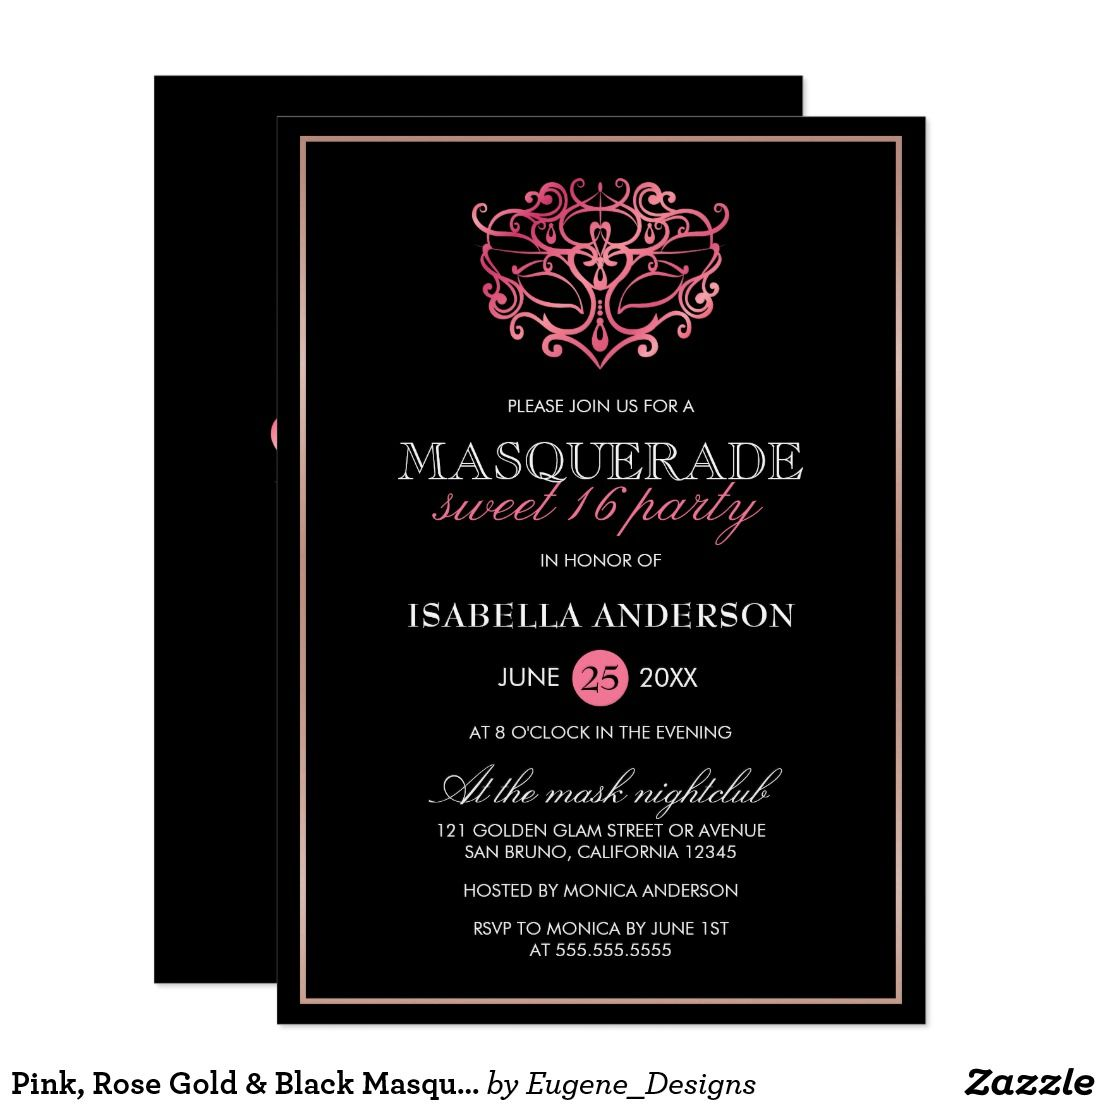 Pink, Rose Gold & Black Masquerade Sweet 16 Party Invitation ...